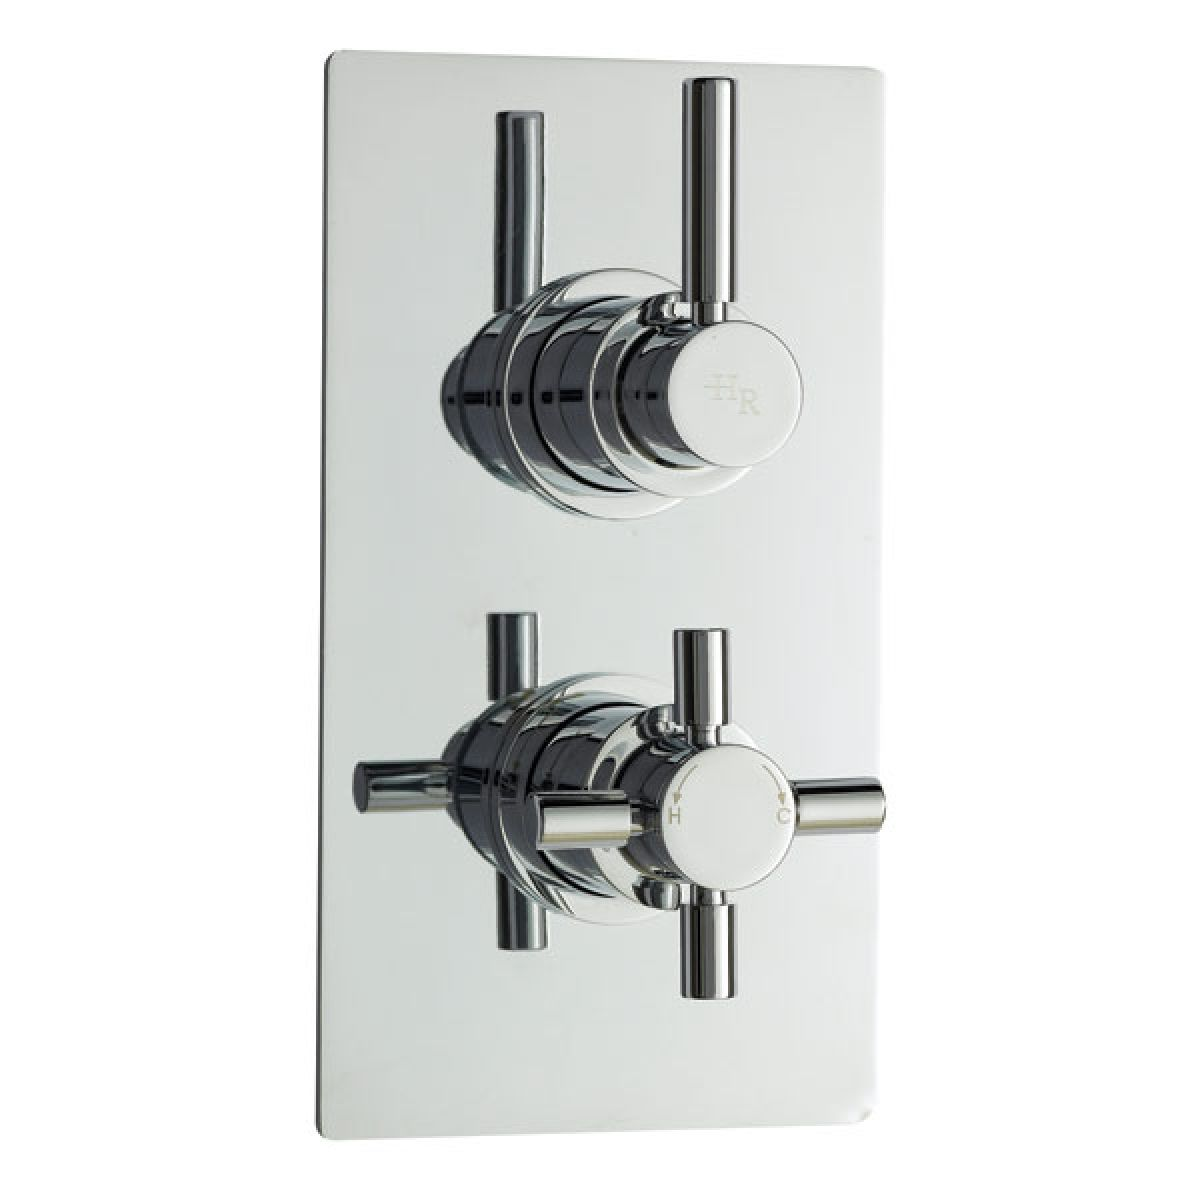 Hudson Reed Pura Twin Concealed Thermostatic Shower Valve with Diverter